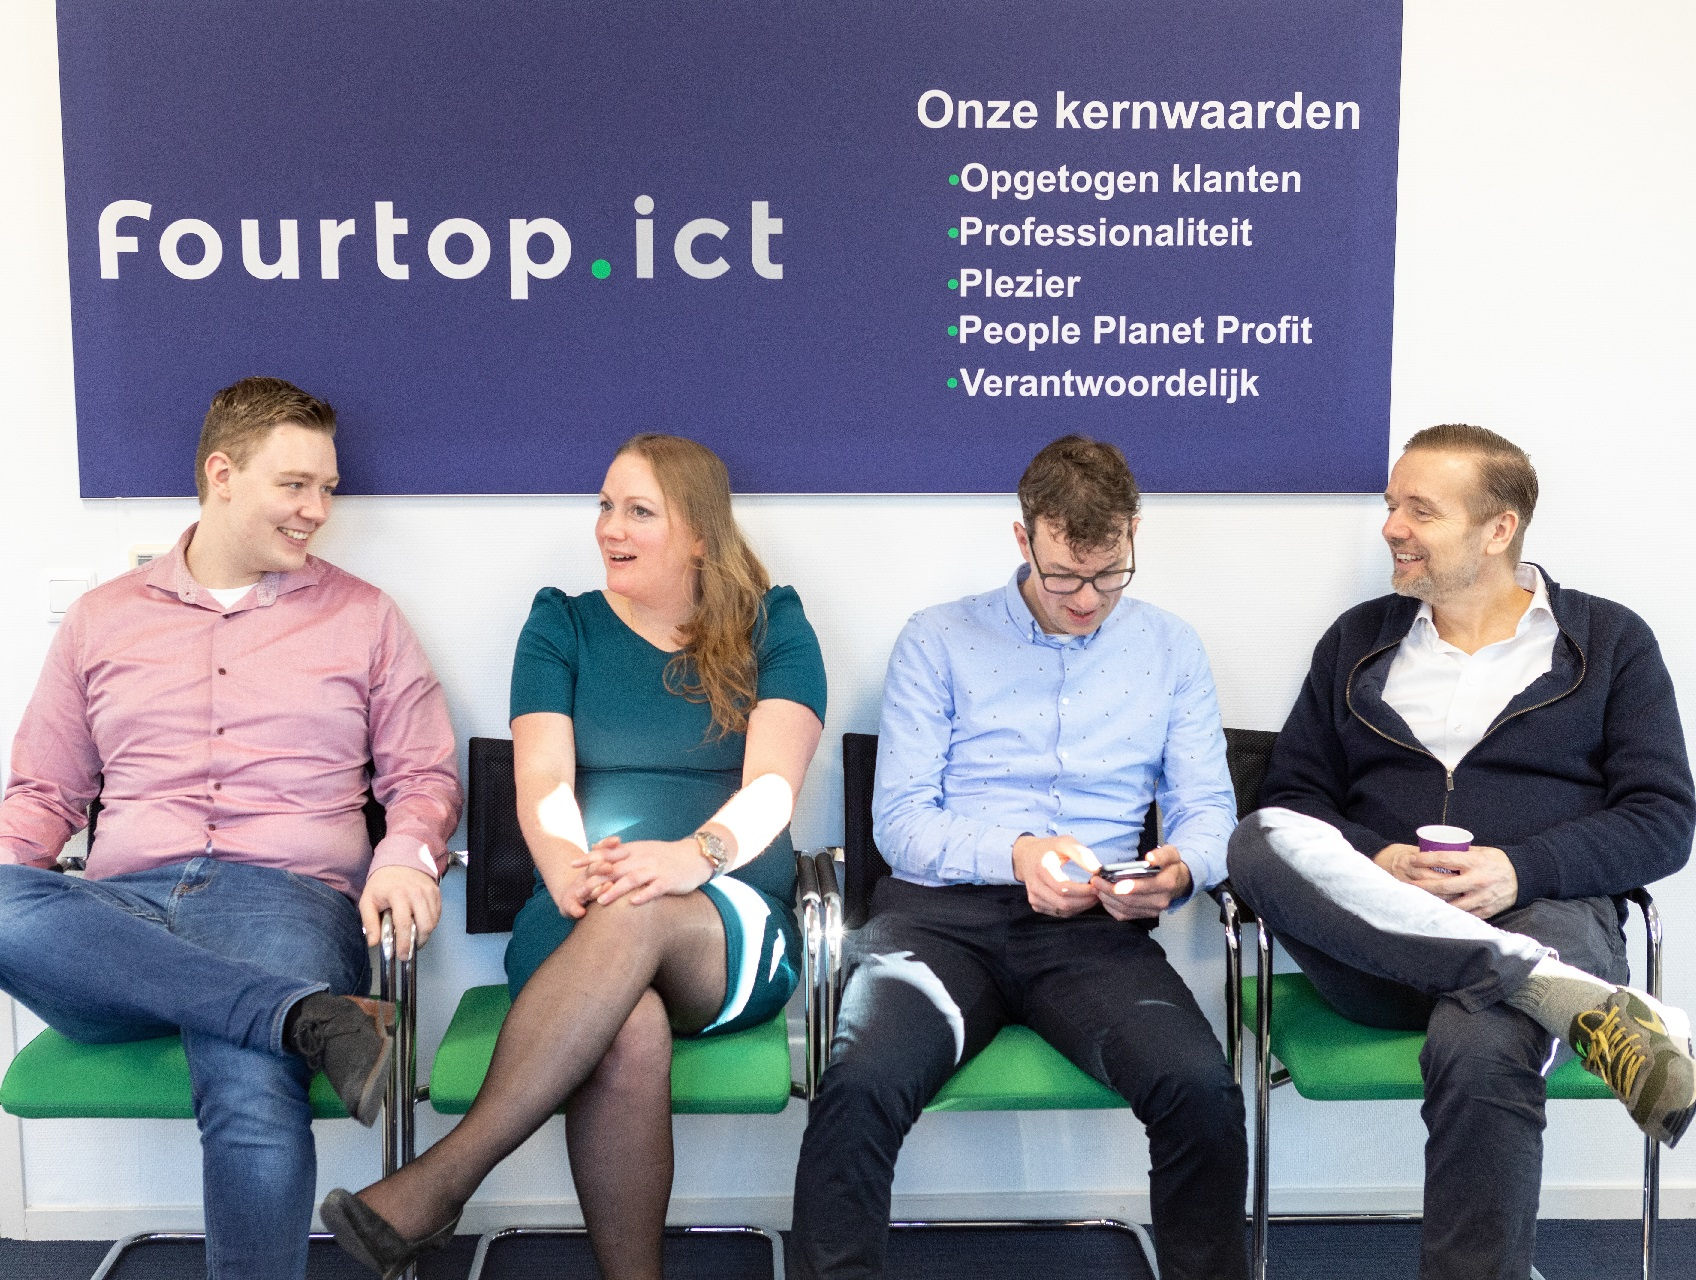 De Fourtop kernwaarden | Download Fourtop ICT